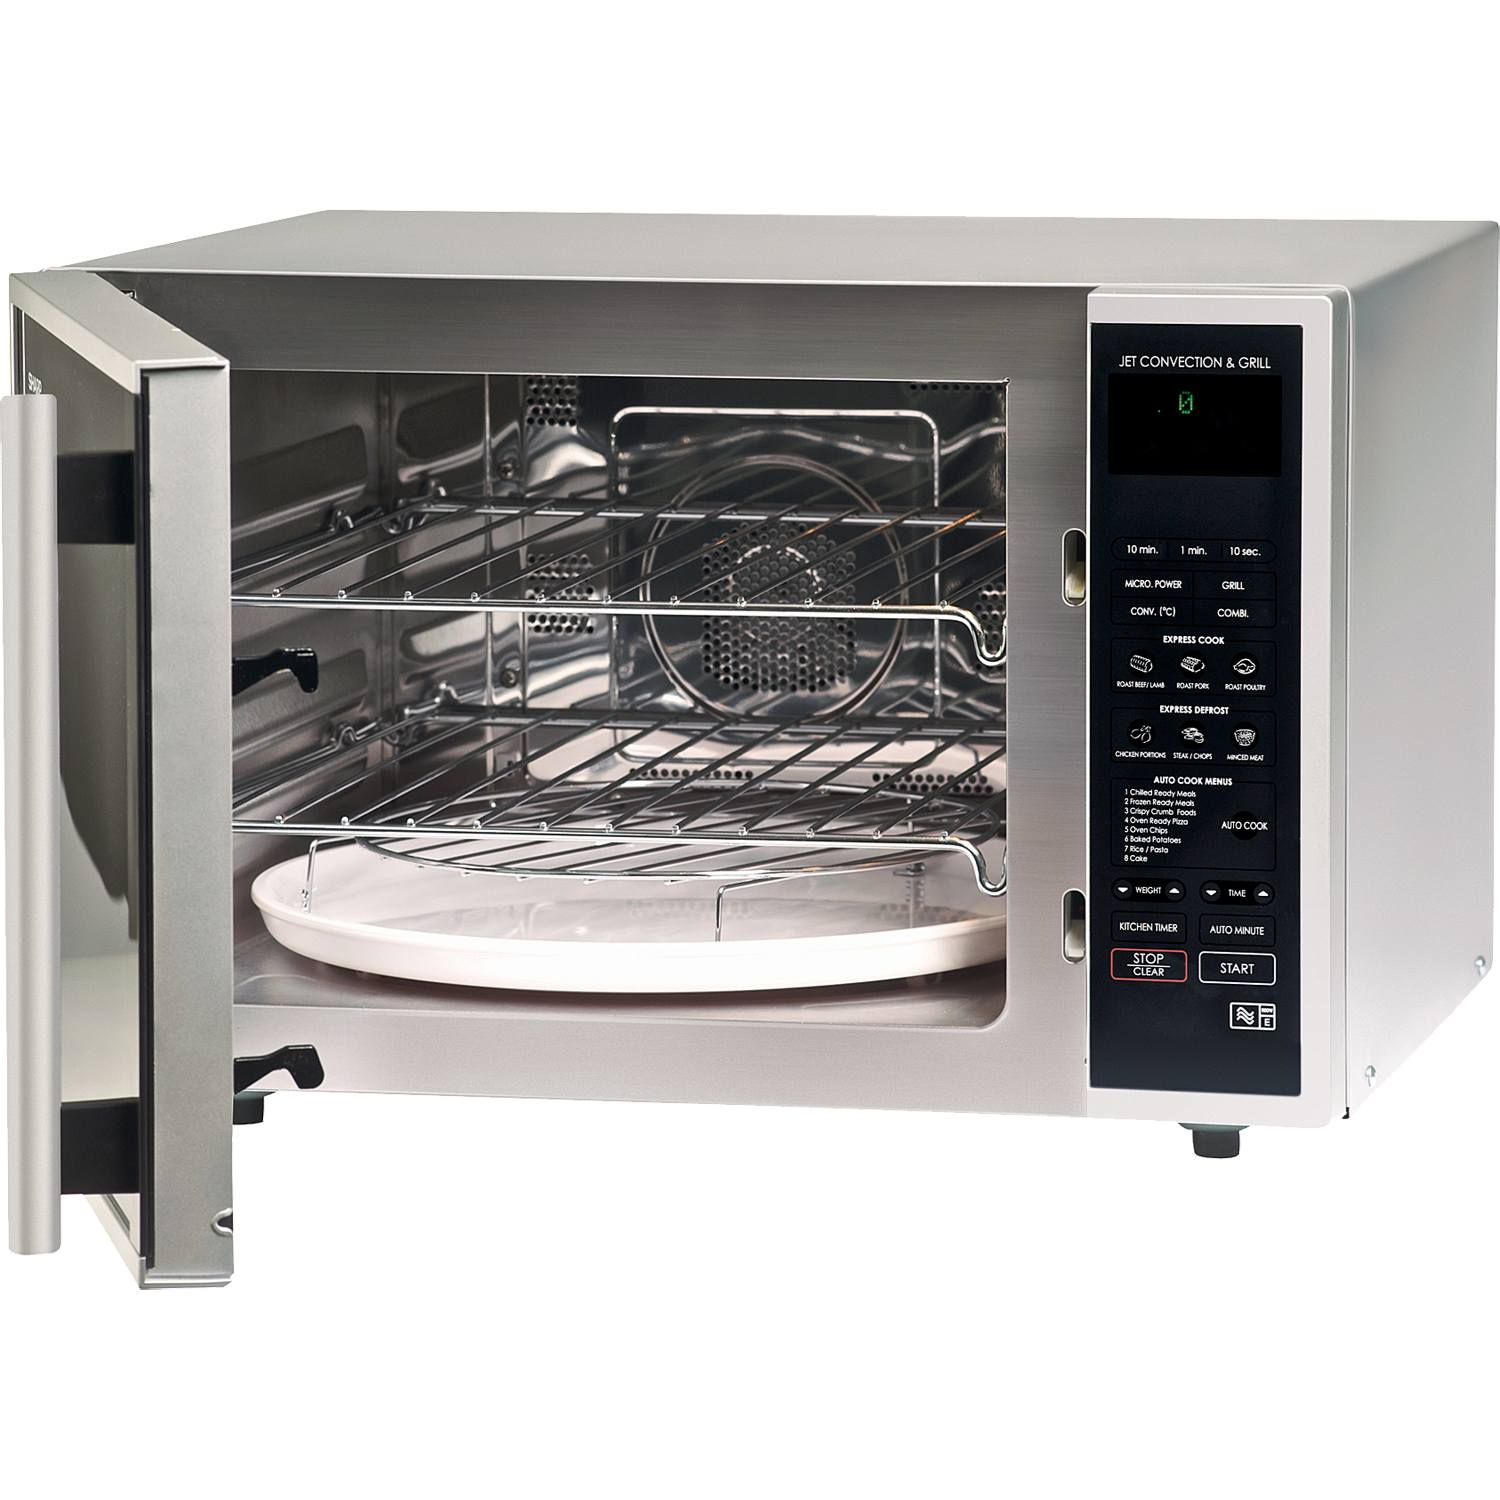 Sharp R959slmaa 40l 12 Programmes Combination Microwave Oven In Silver Black 219 00